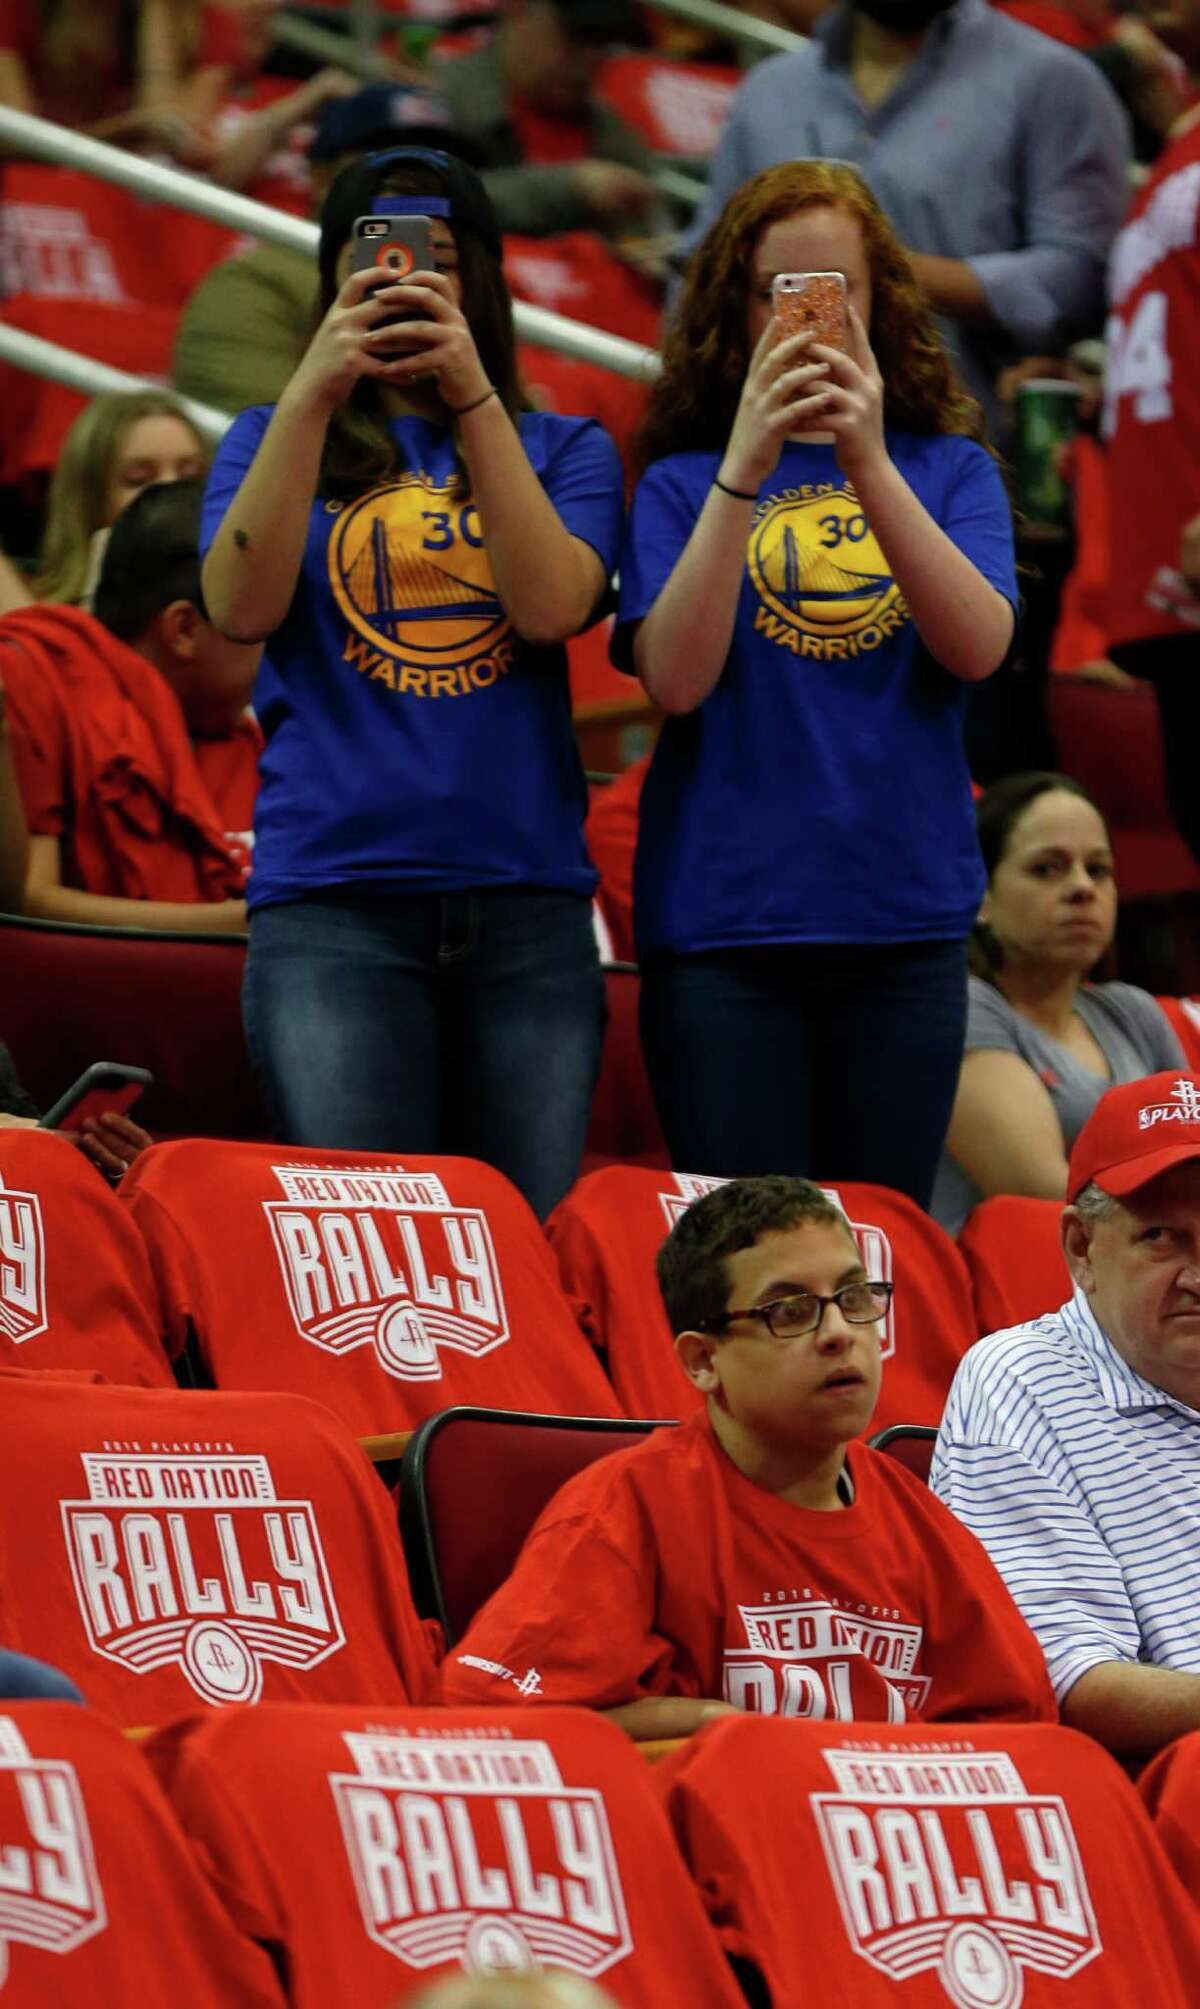 Golden State Warriors fans take photos before the start of game four of the first round of the NBA playoff series at Toyota Center, Sunday, April 24, 2016, in Houston.